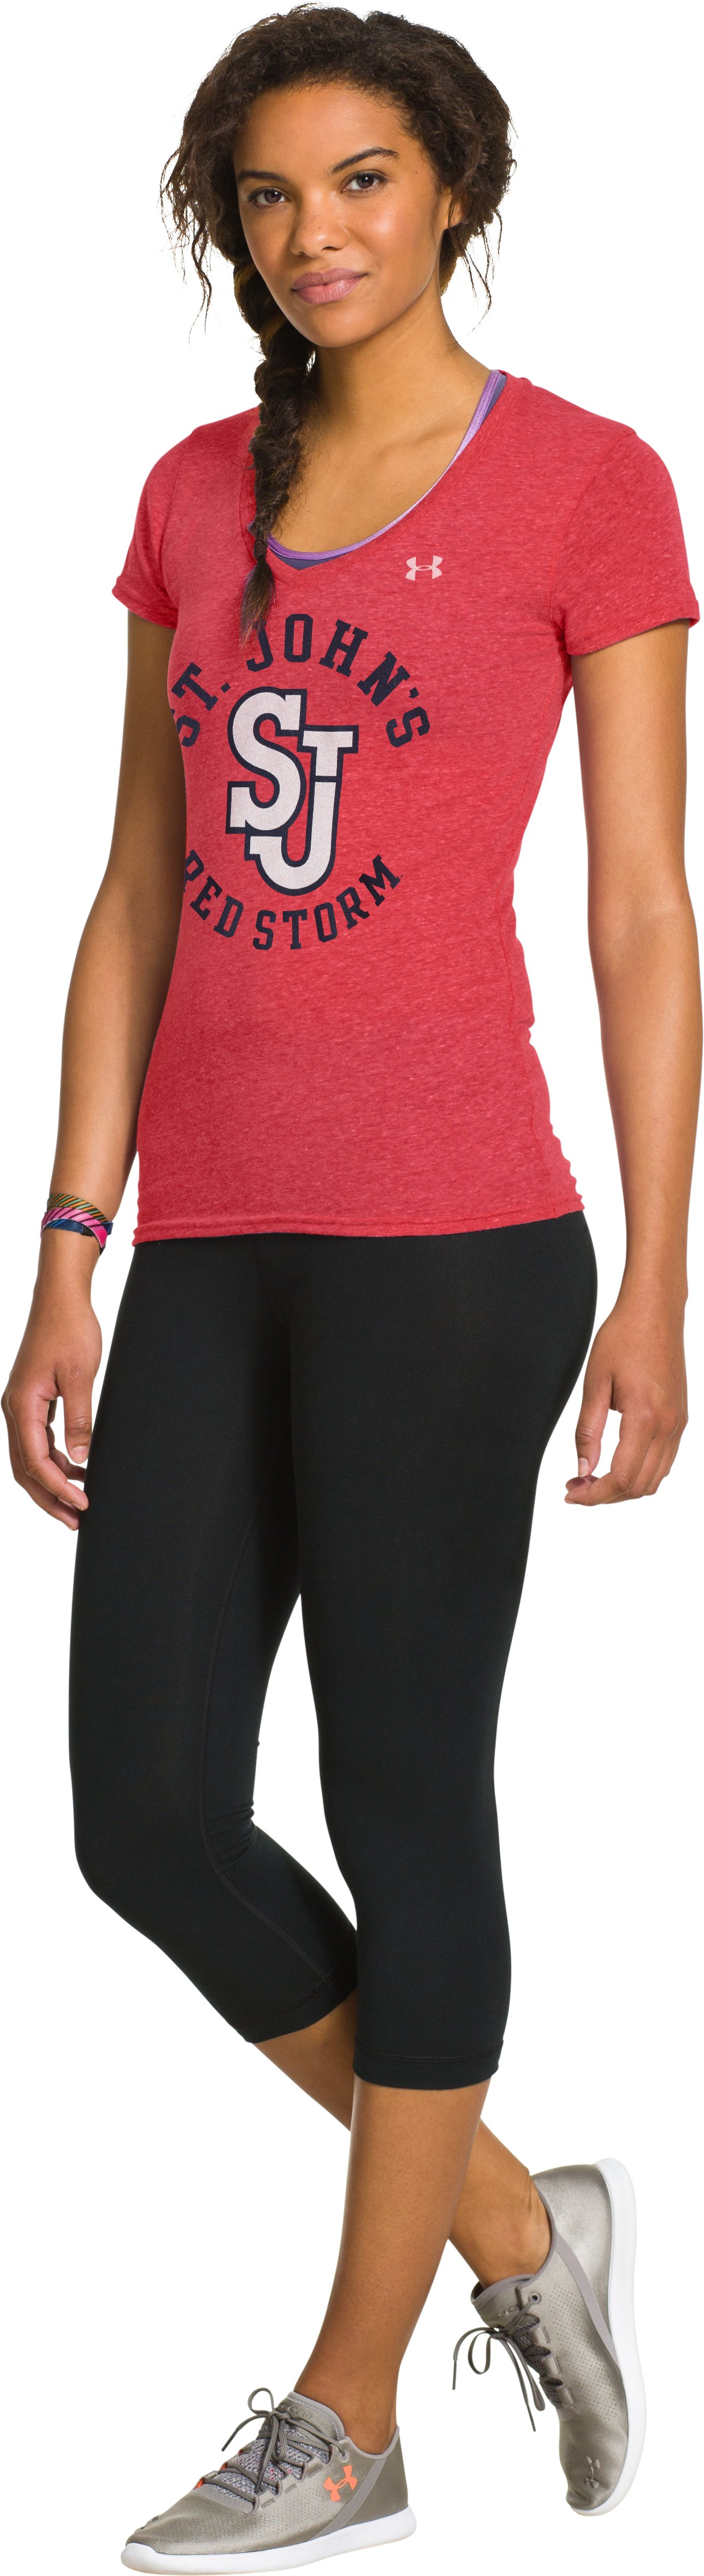 Women's Under Armour® Legacy St Johns Charged Cotton Tri-Blend V-Neck, Red